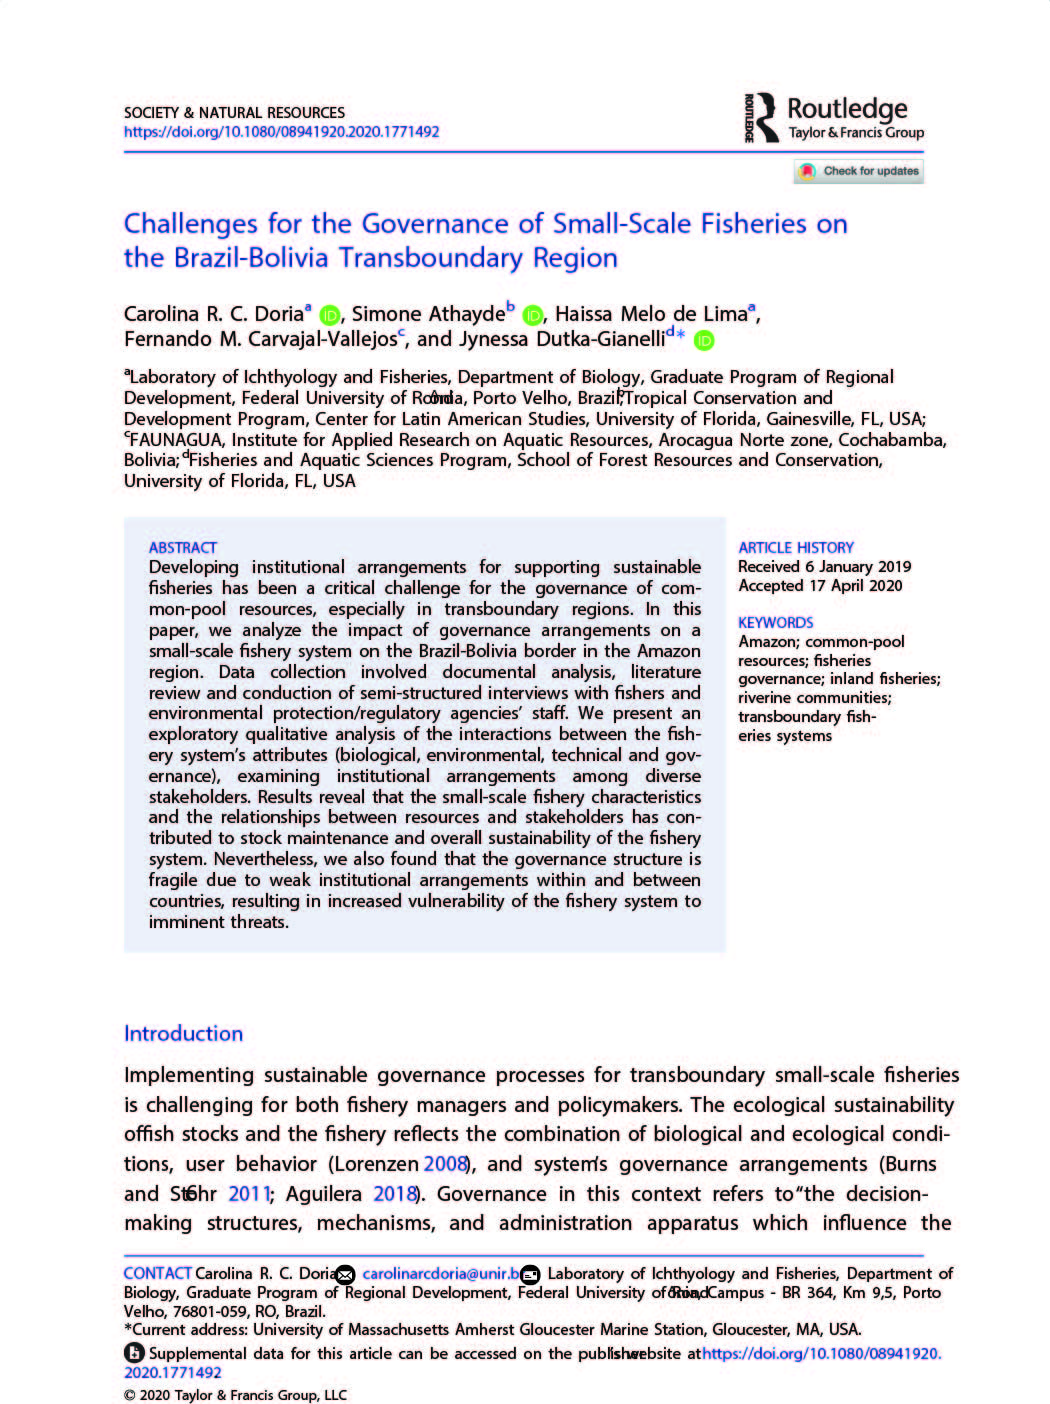 Doria_2020_Challenges for the Governance of Small Scale Fisheries on the Brazil Bolivia Transboundary Region_SocietyNaturalResources_tapa2